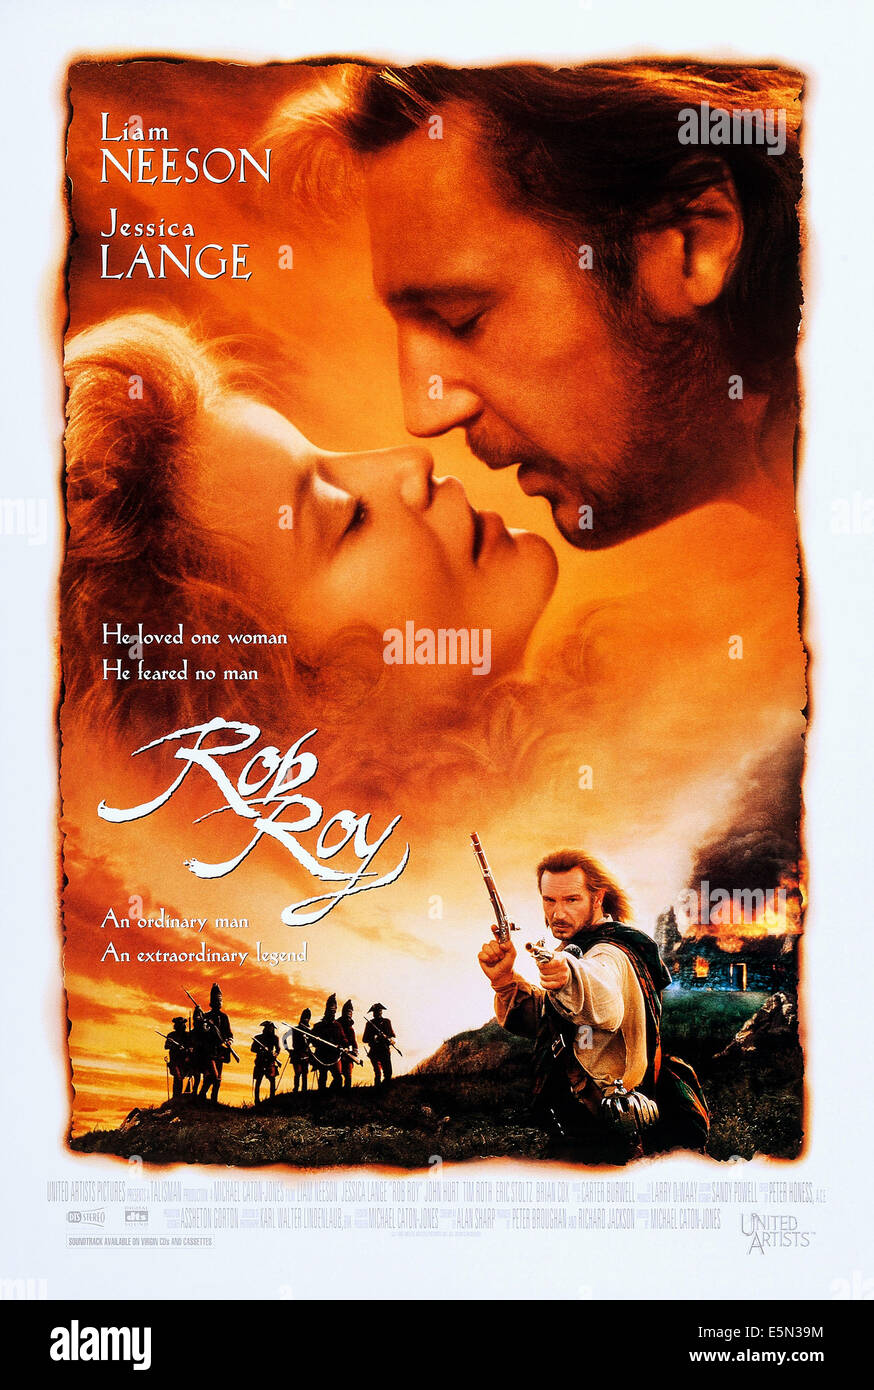 ROB ROY, US poster art, top from left: Jessica Lange, Liam Neeson, bottom right: Liam Neeson, 1995, ©United - Stock Image